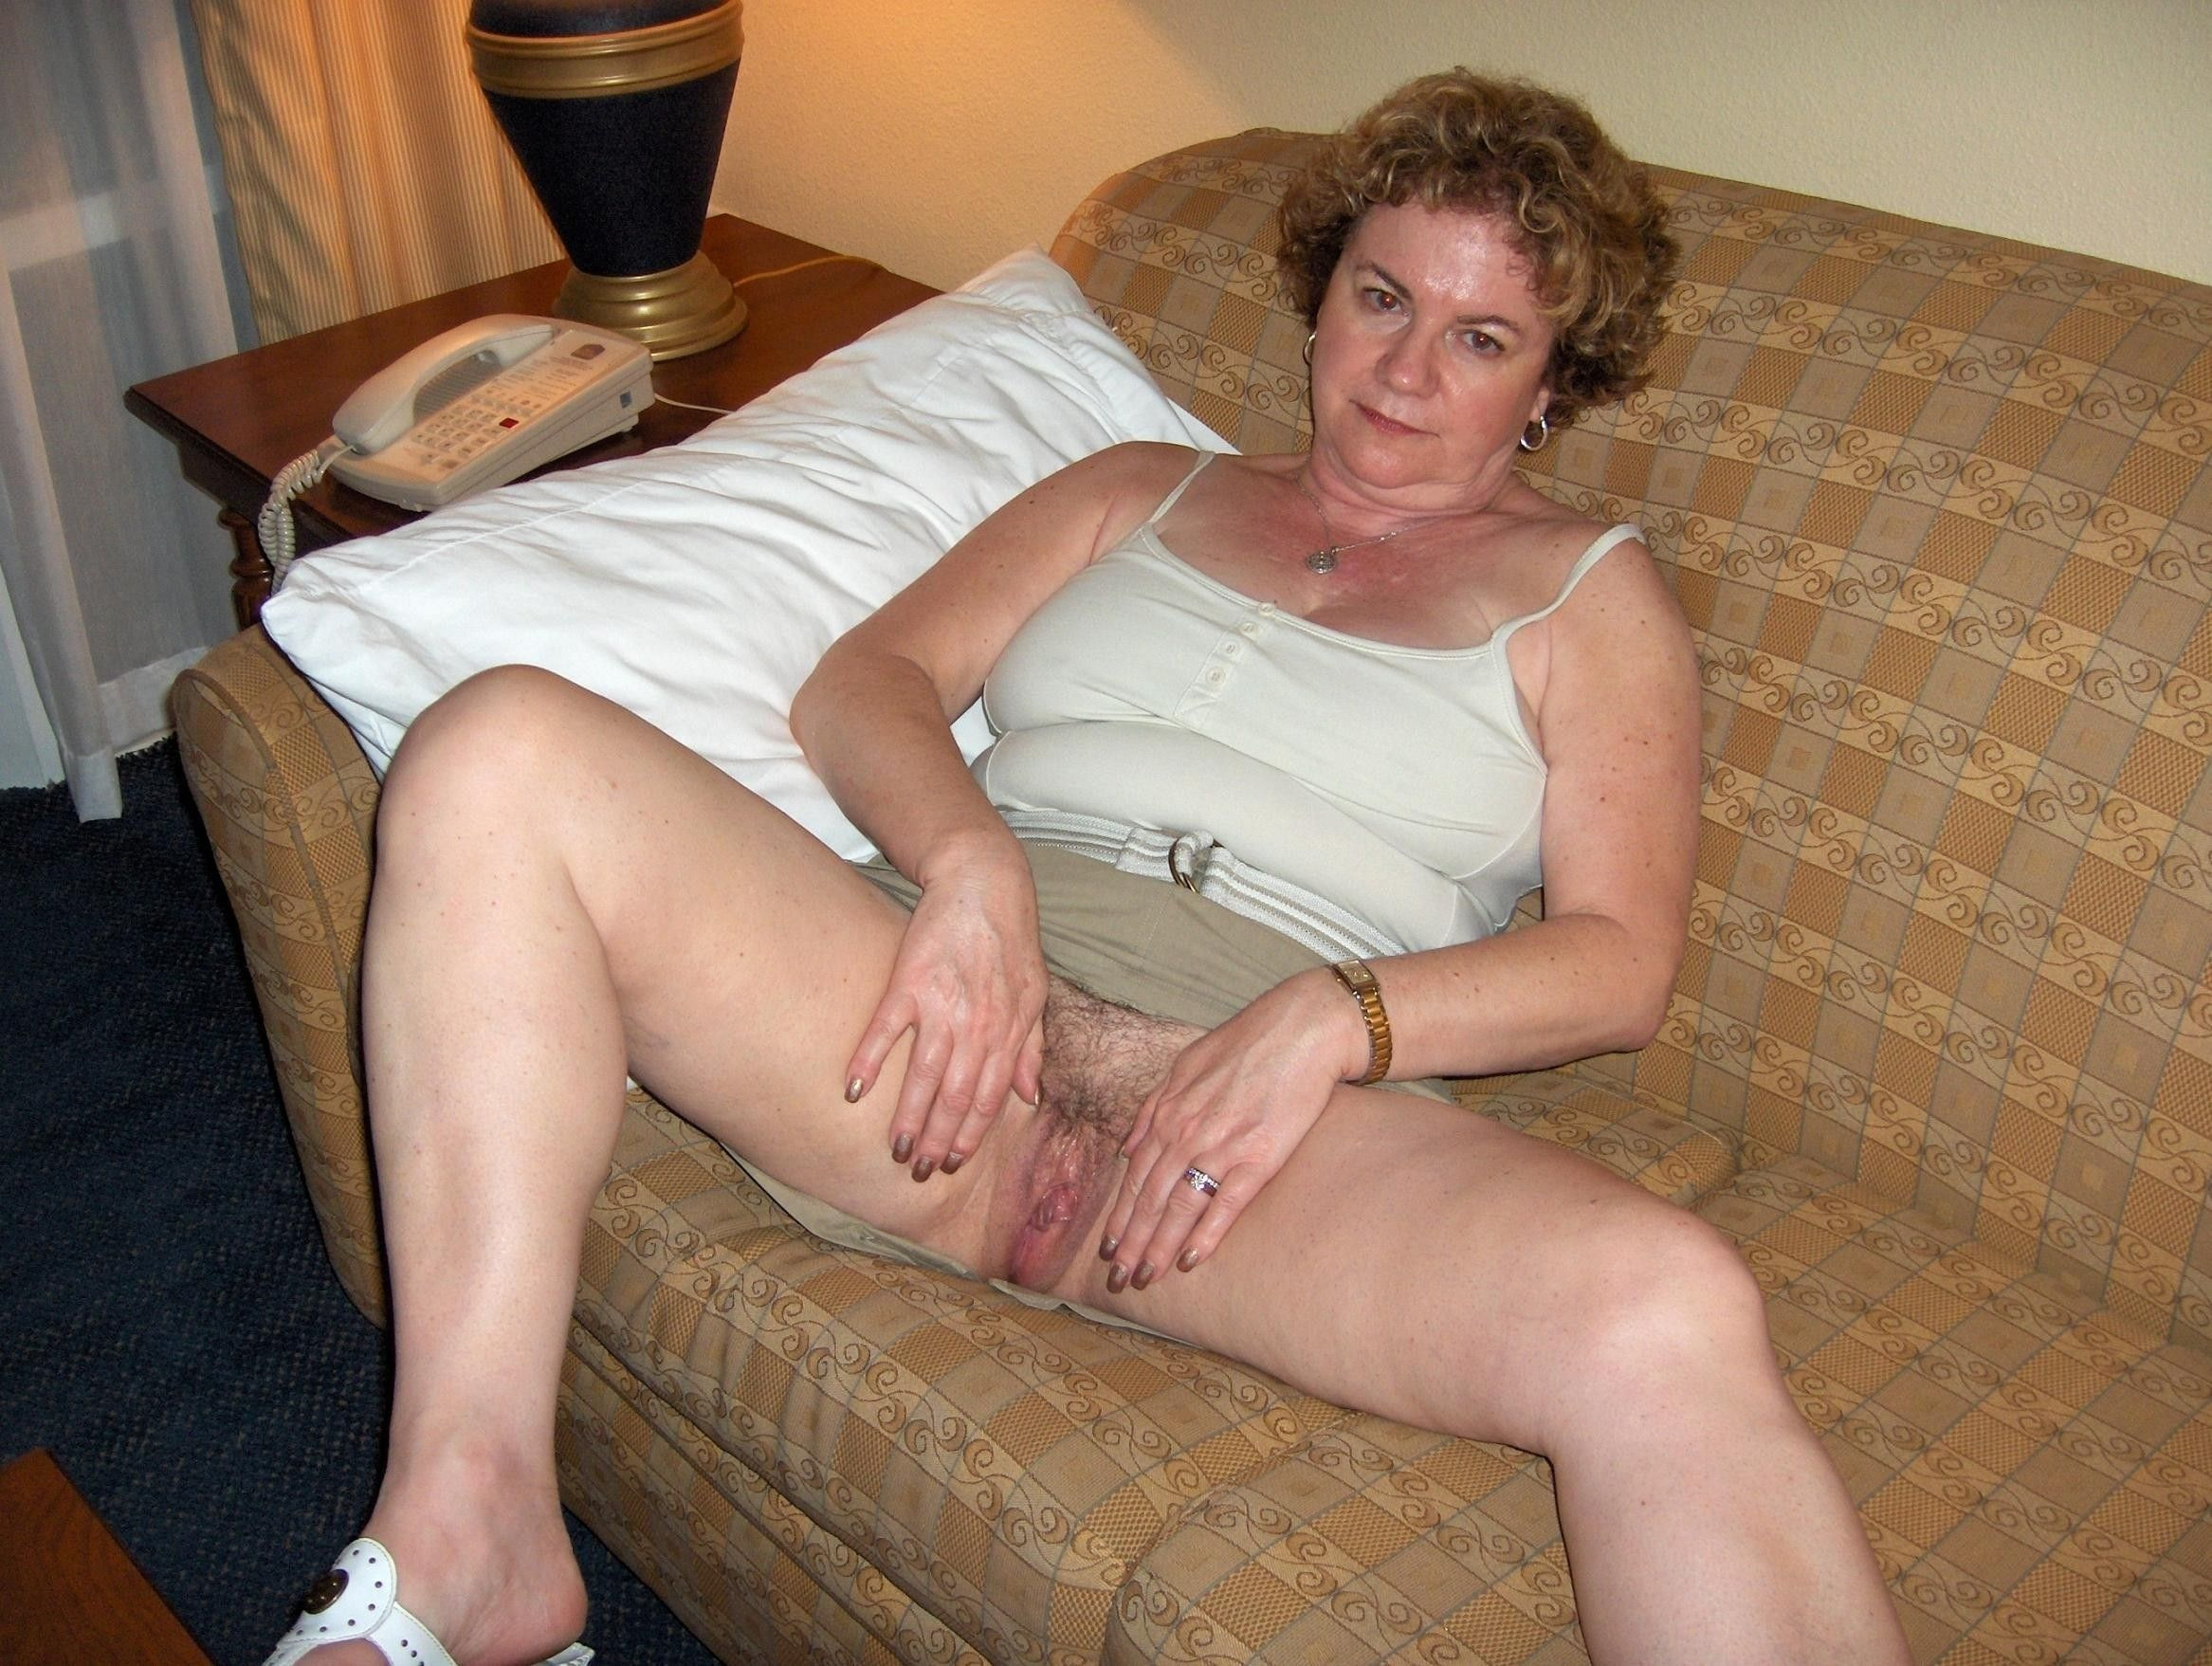 Alias recommendet nude photos Free housewife